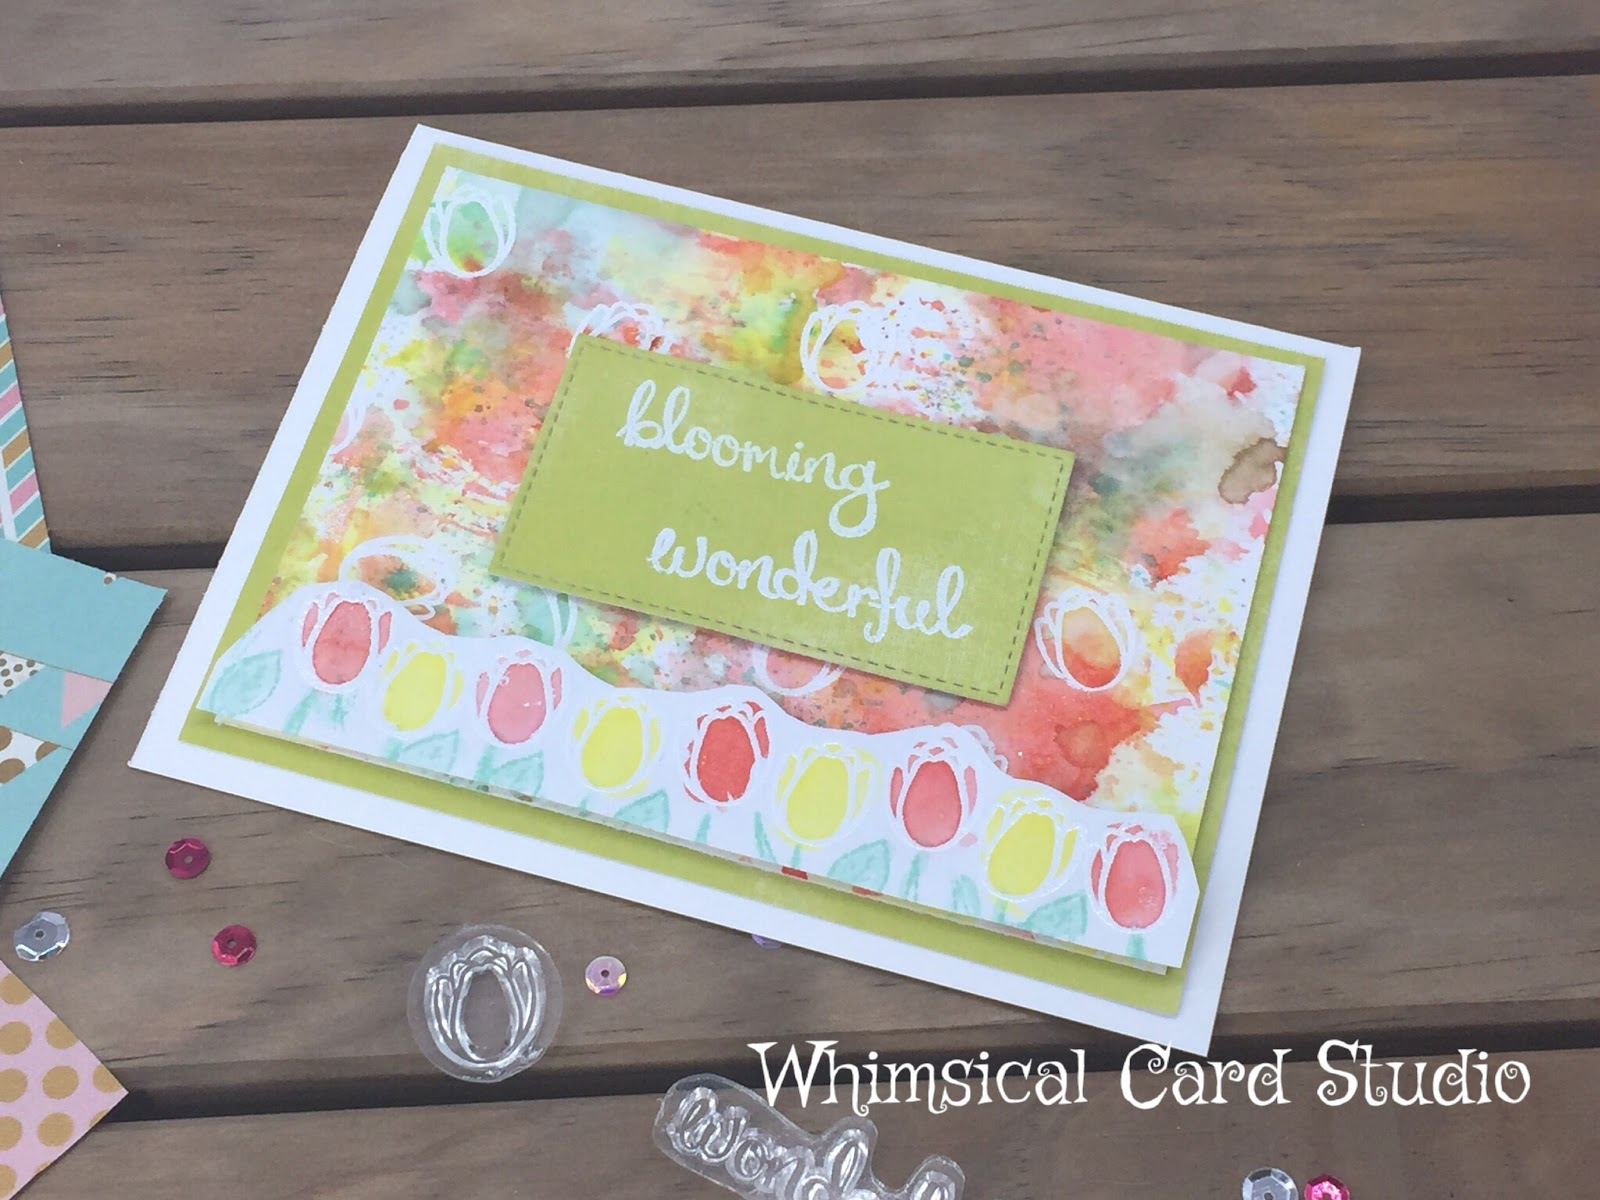 Cream colored cardstock paper studio - I Then Took A Separate Piece Of White Cardstock And Stamped Tulips In A Row In Versamark Heat Embossed In White Then Used The Same Distress Ink Colors And